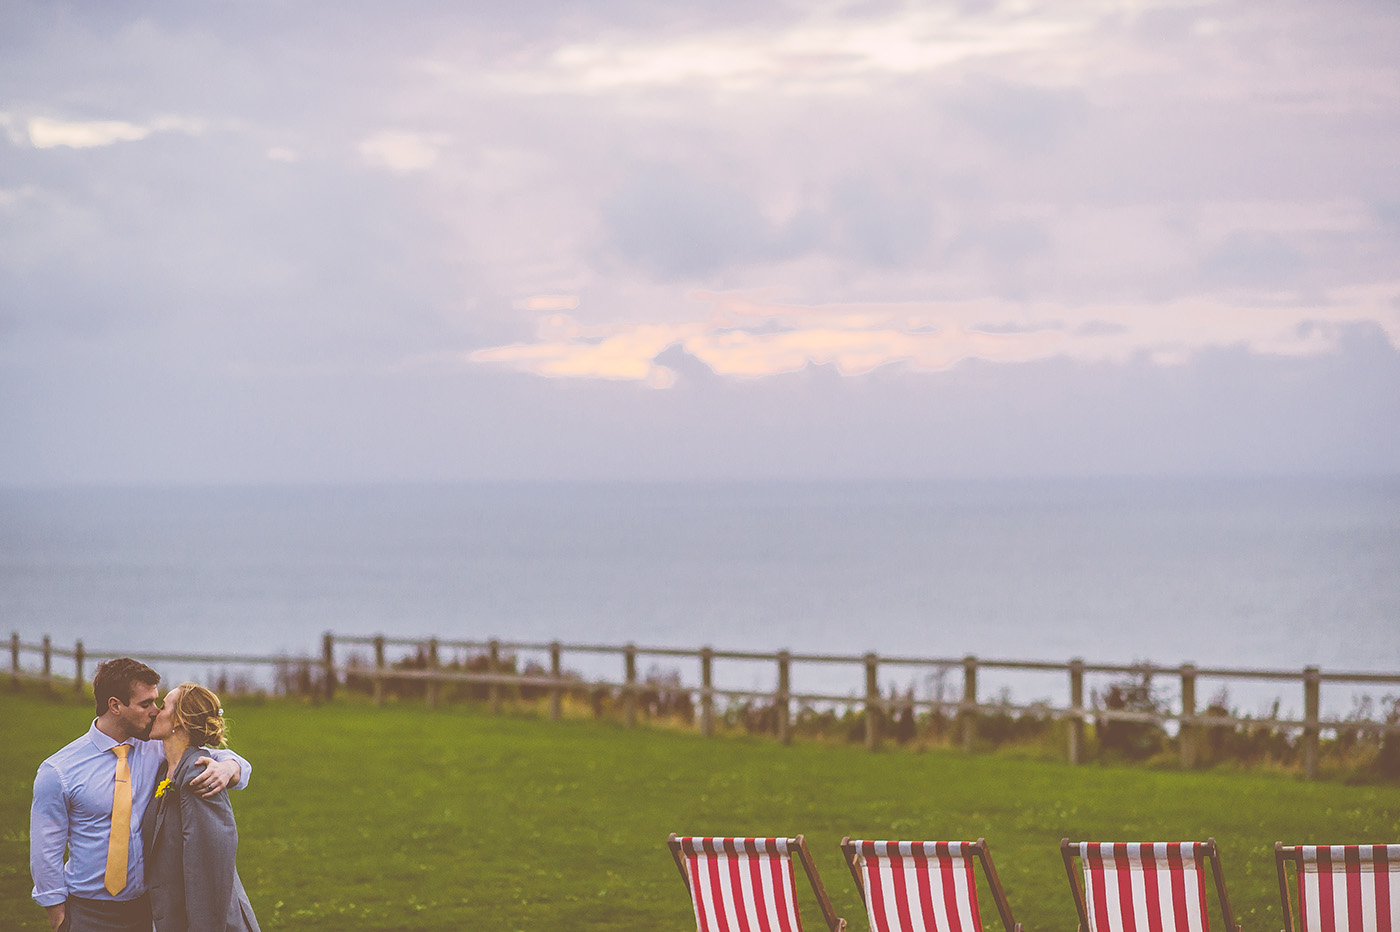 beach-wedding-venues-UK-Ocean-Kave-GRW-Photography